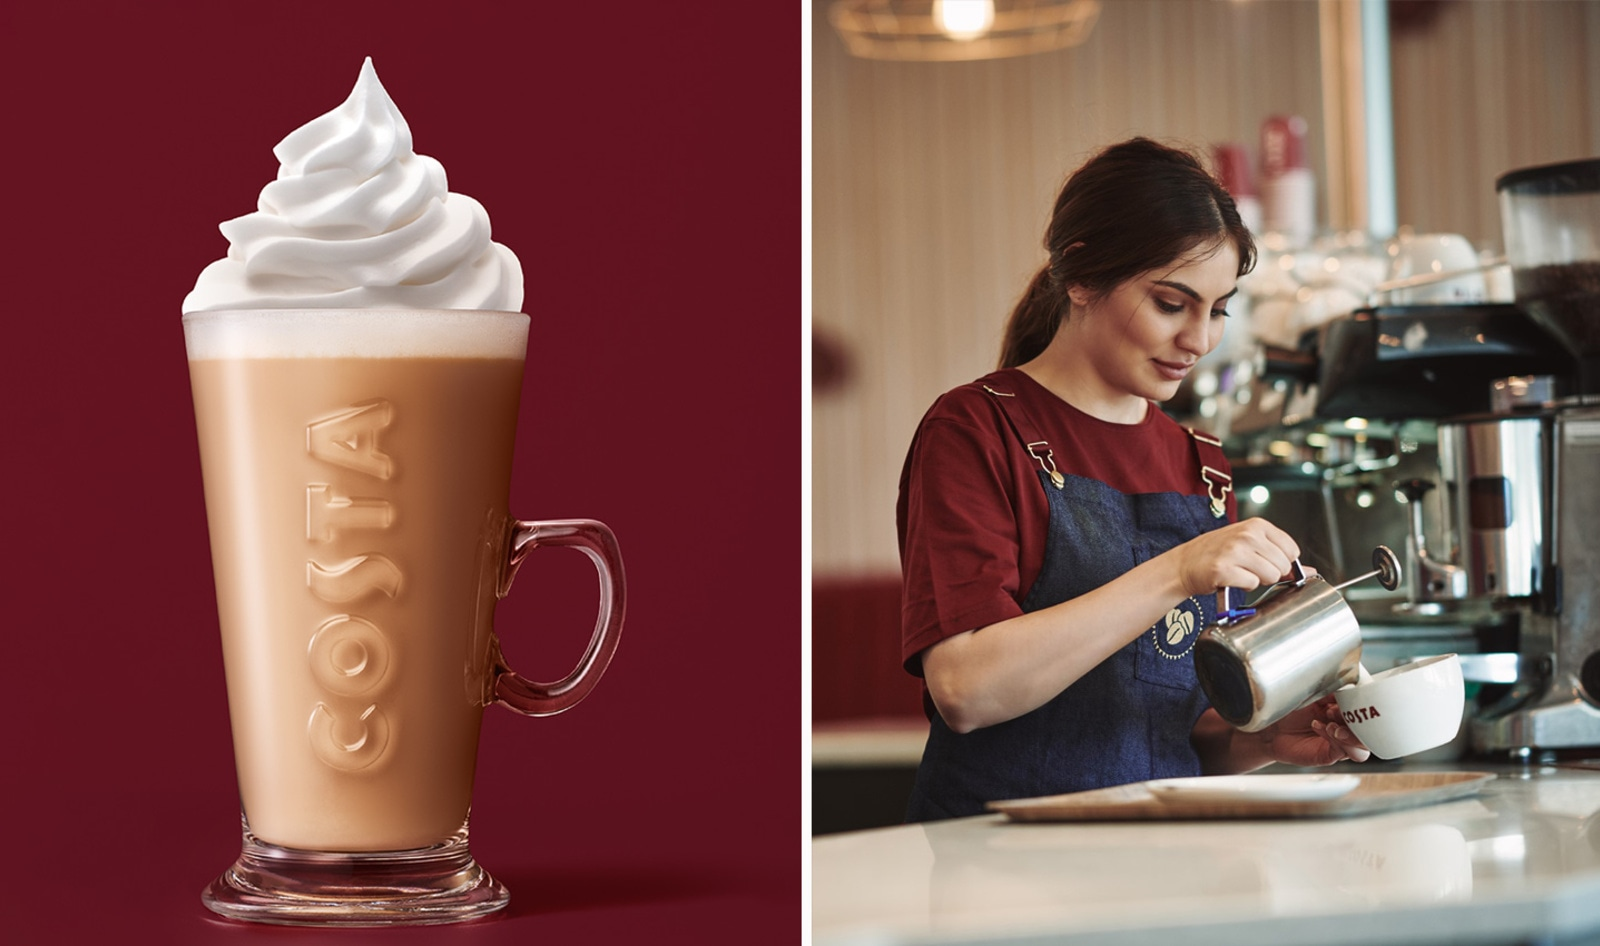 Costa Coffee Is Now Serving Vegan Whipped Cream at All 140 Locations in Poland